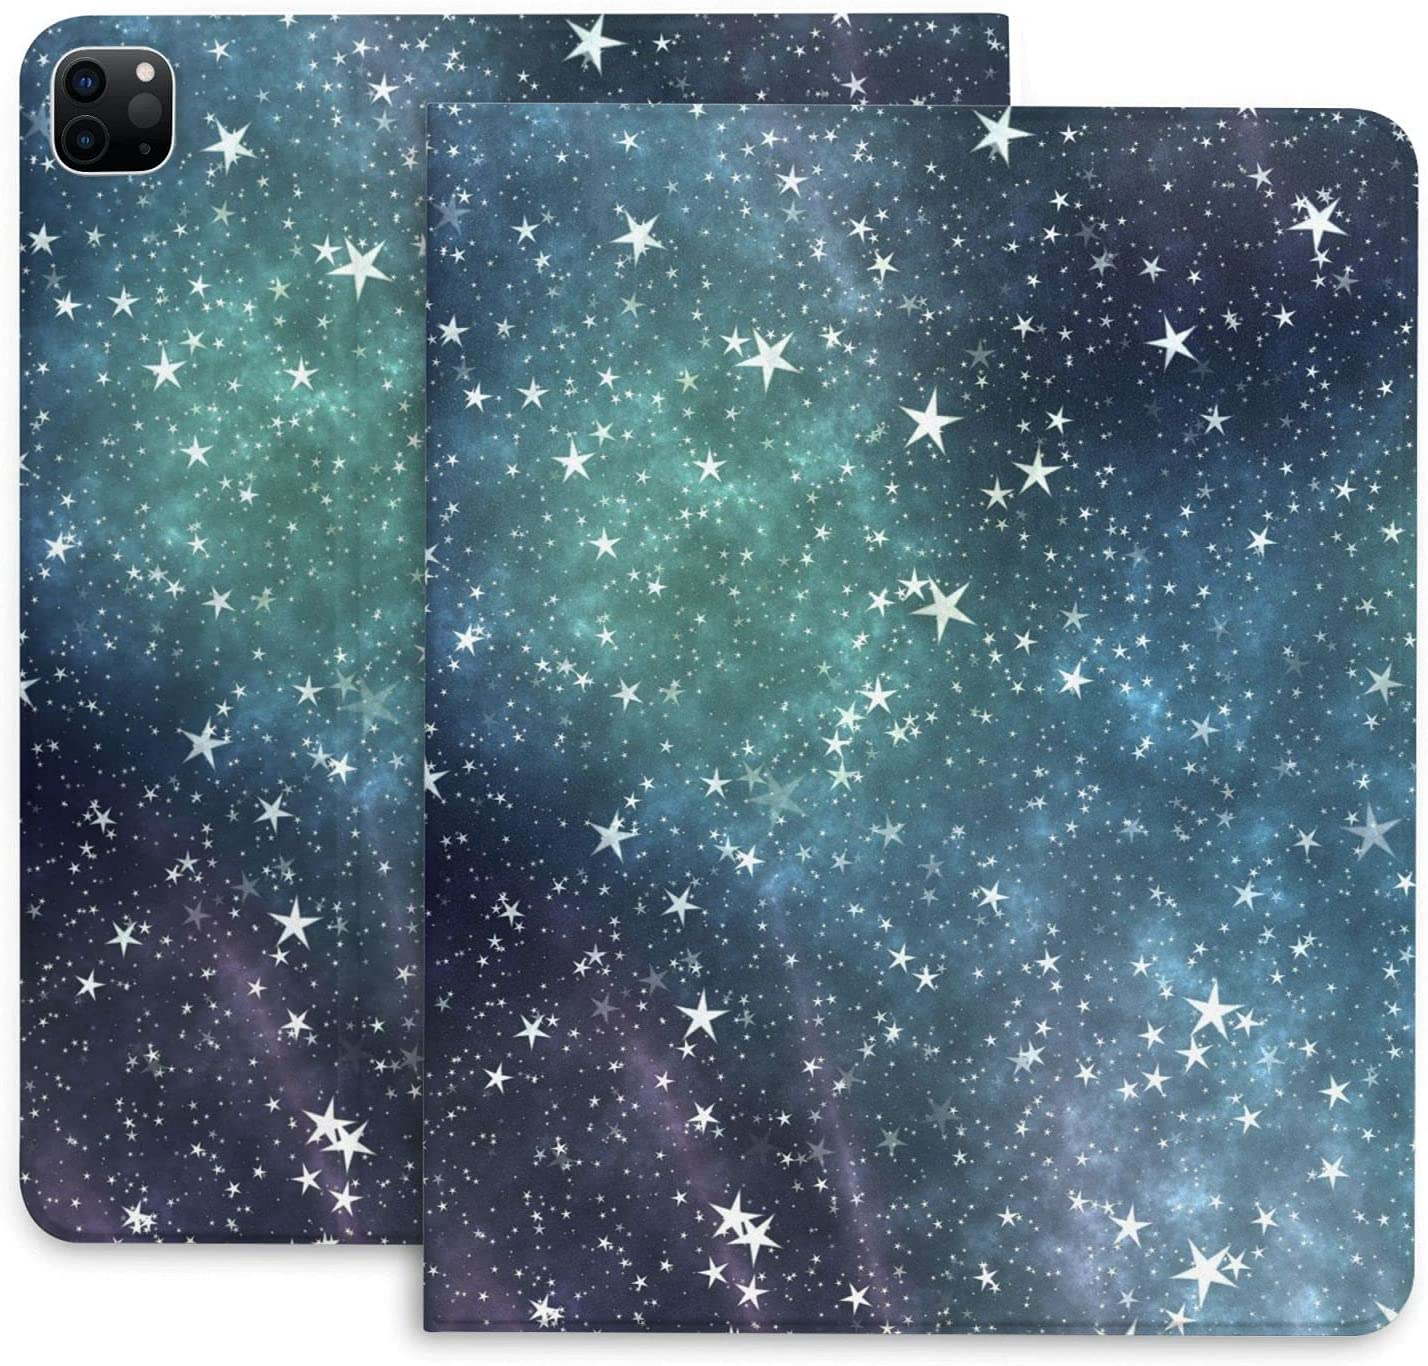 XIWEB Galaxy Ipad Elegant Limited time sale 2020 Pro Protective with Case Magnet Durable S